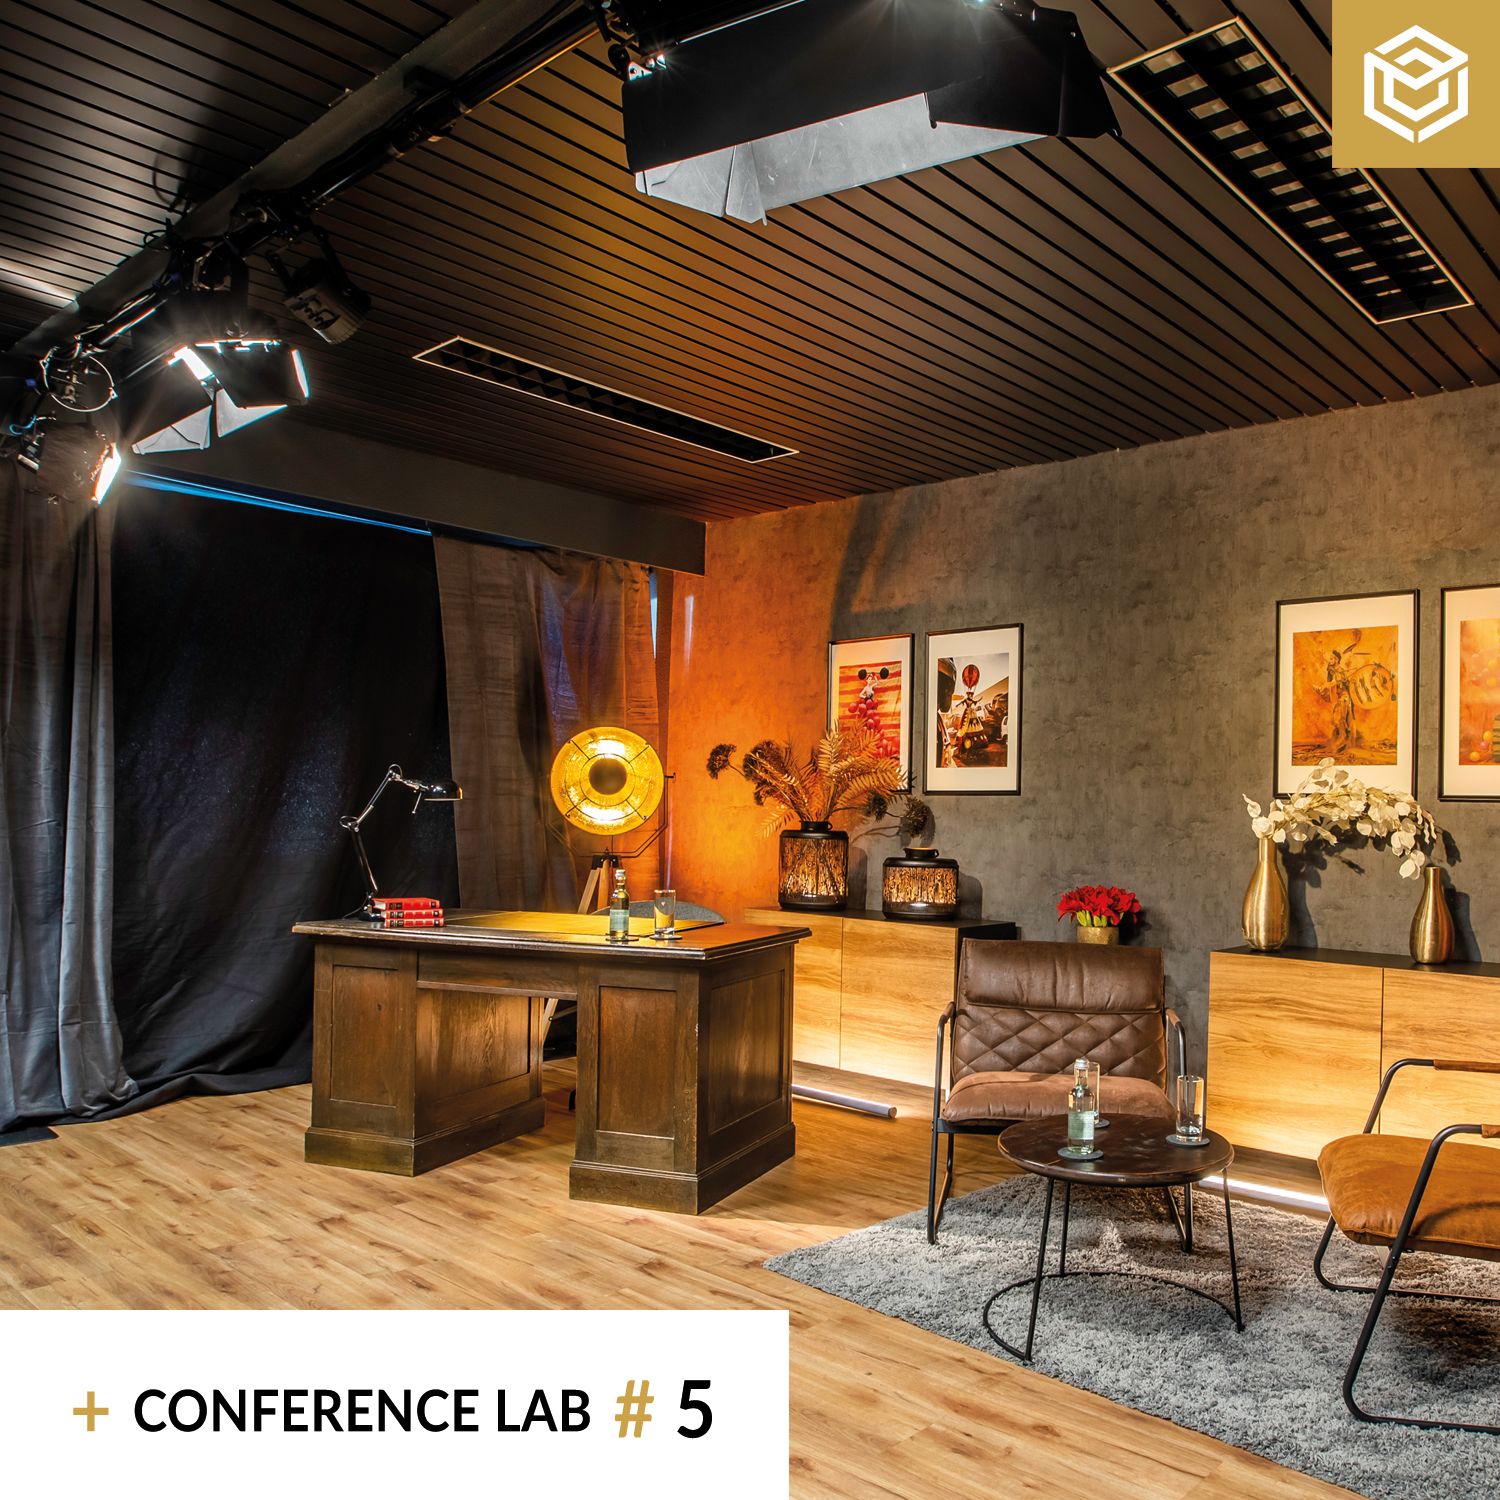 Streaming Studio Conference Lab